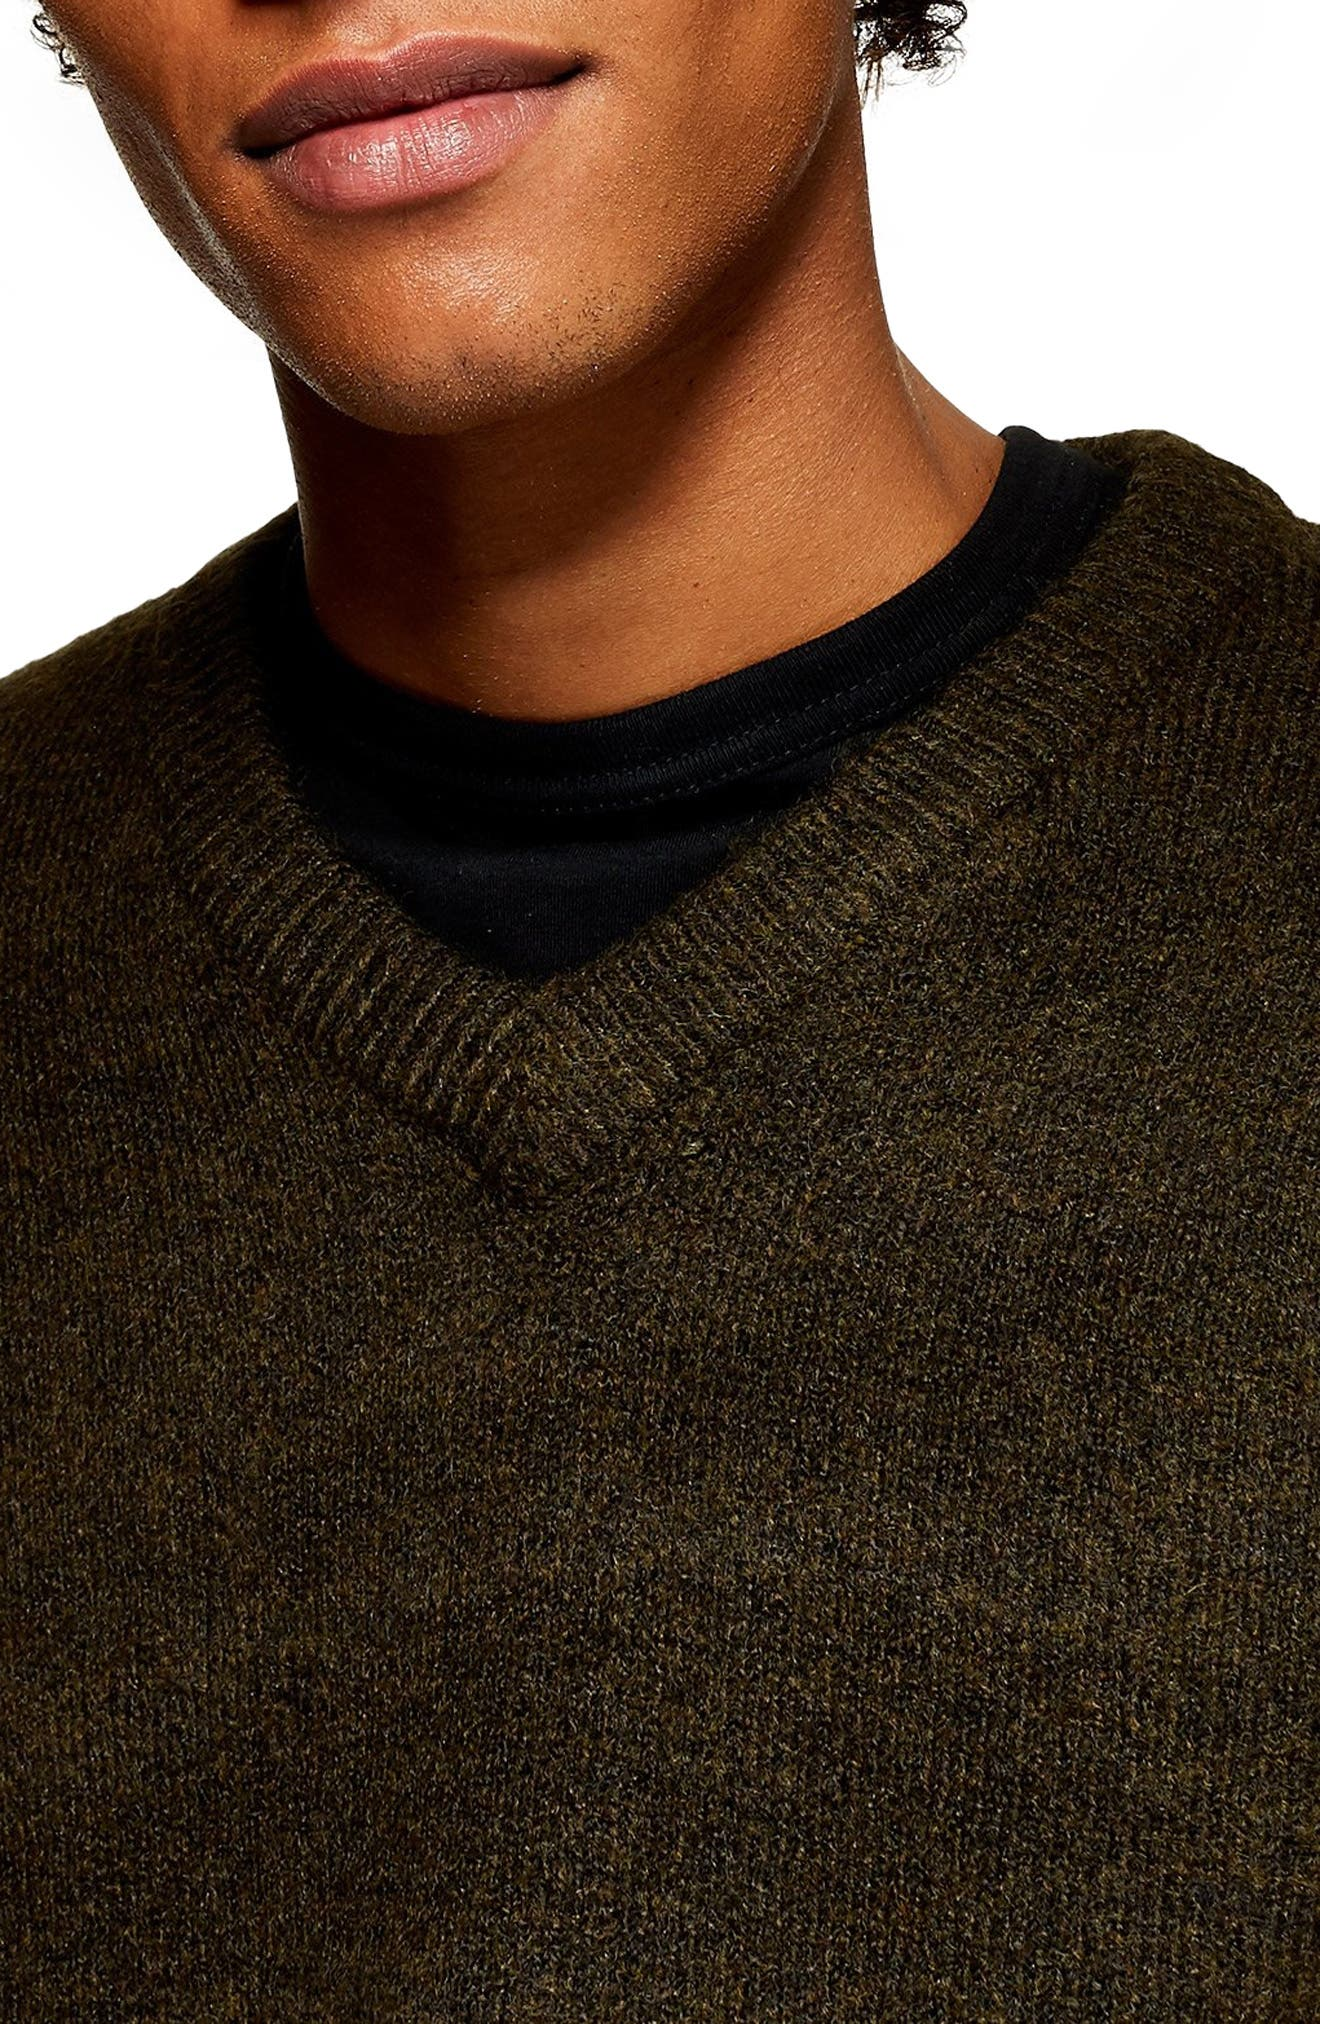 Harlow Classic Fit Sweater,                             Alternate thumbnail 3, color,                             700